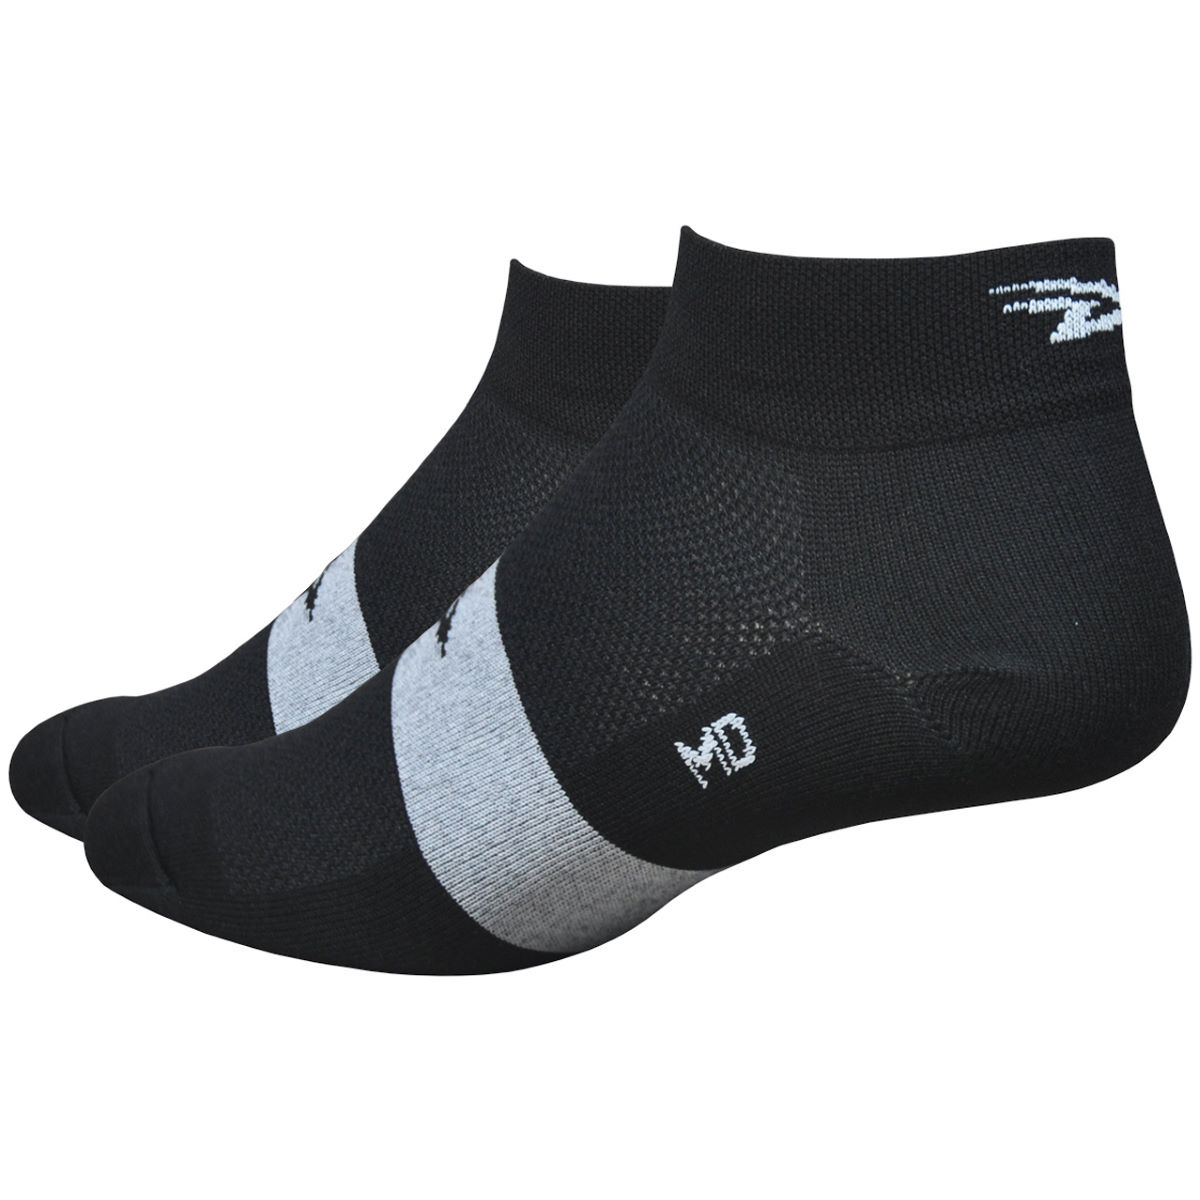 Chaussettes DeFeet Aireator Speede (2,5 cm environ) - Small